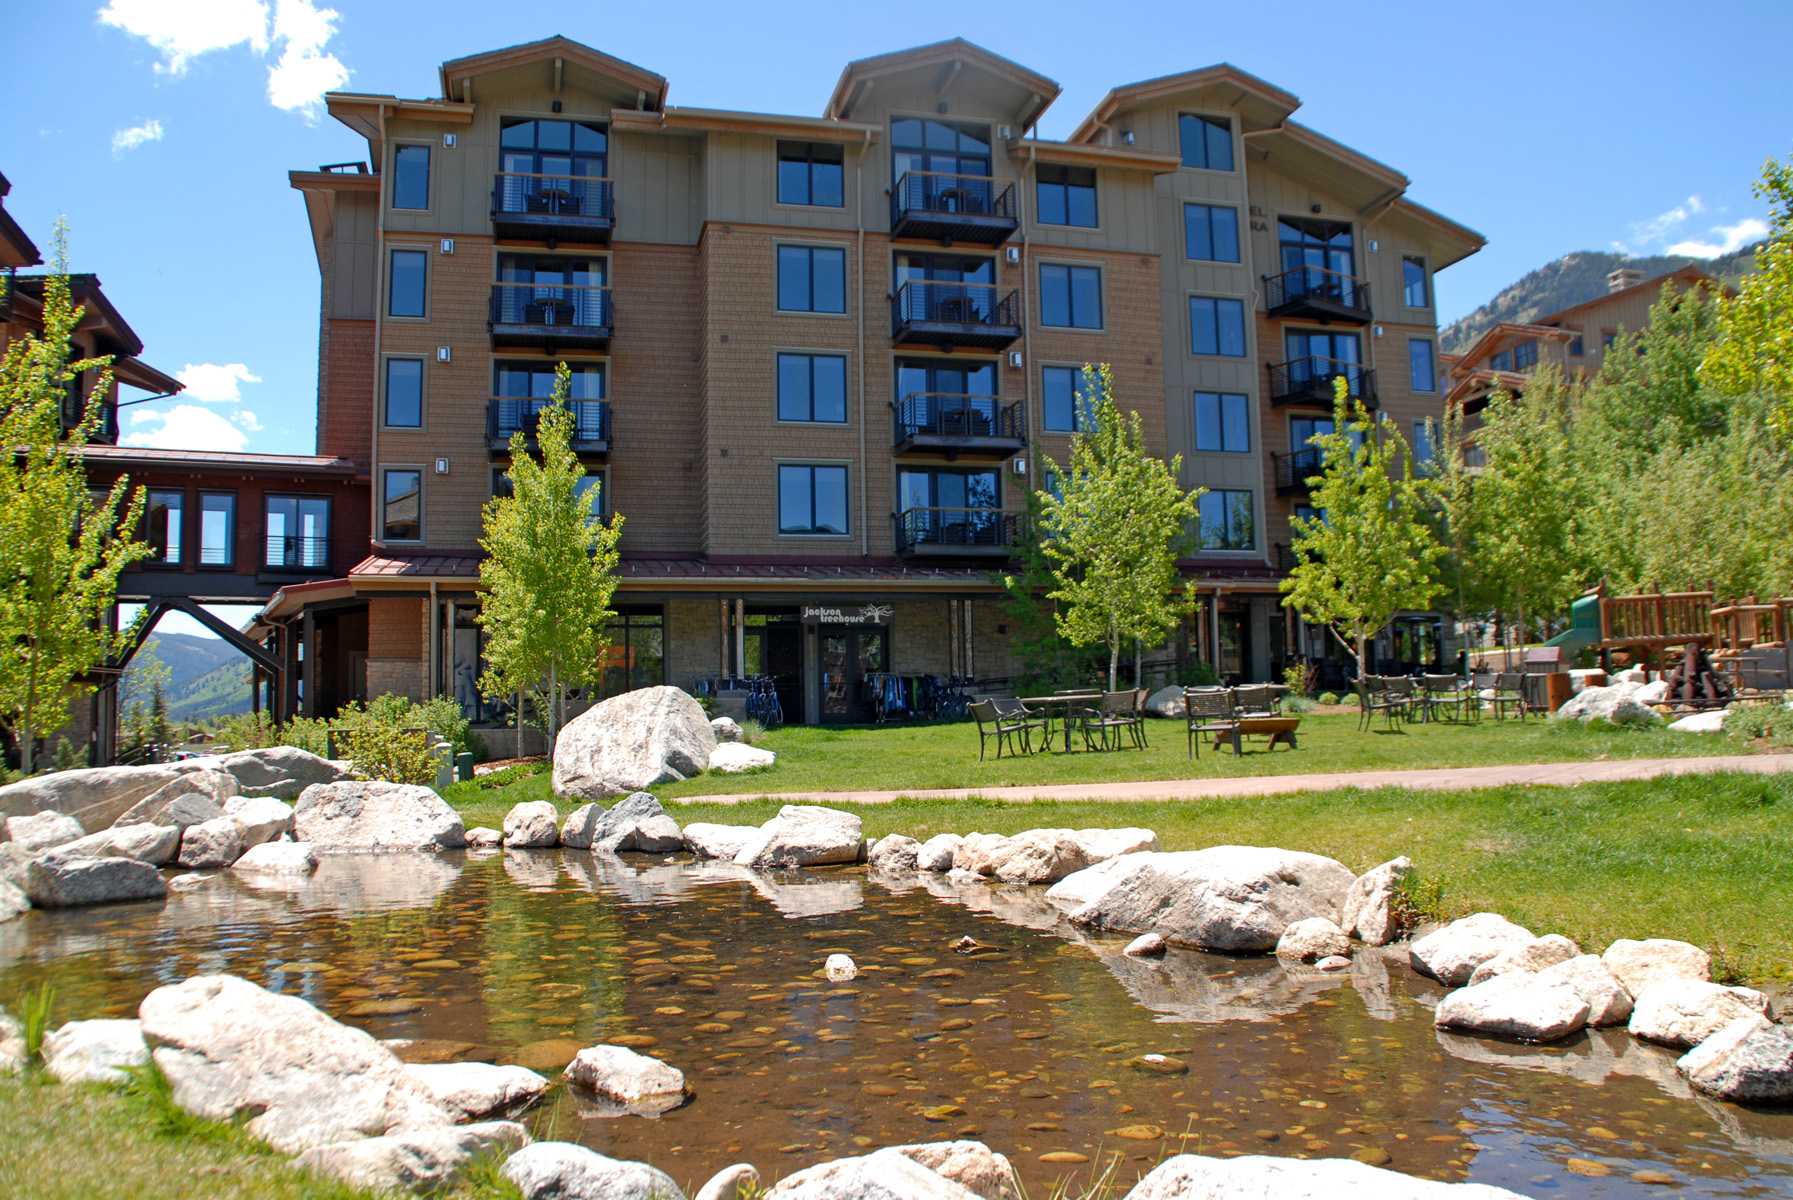 共管物業 為 出售 在 Hotel Terra ski-in/ski-out condo 3335 W. Village Road Unit 223 Teton Village, 懷俄明州, 83025 Jackson Hole, 美國